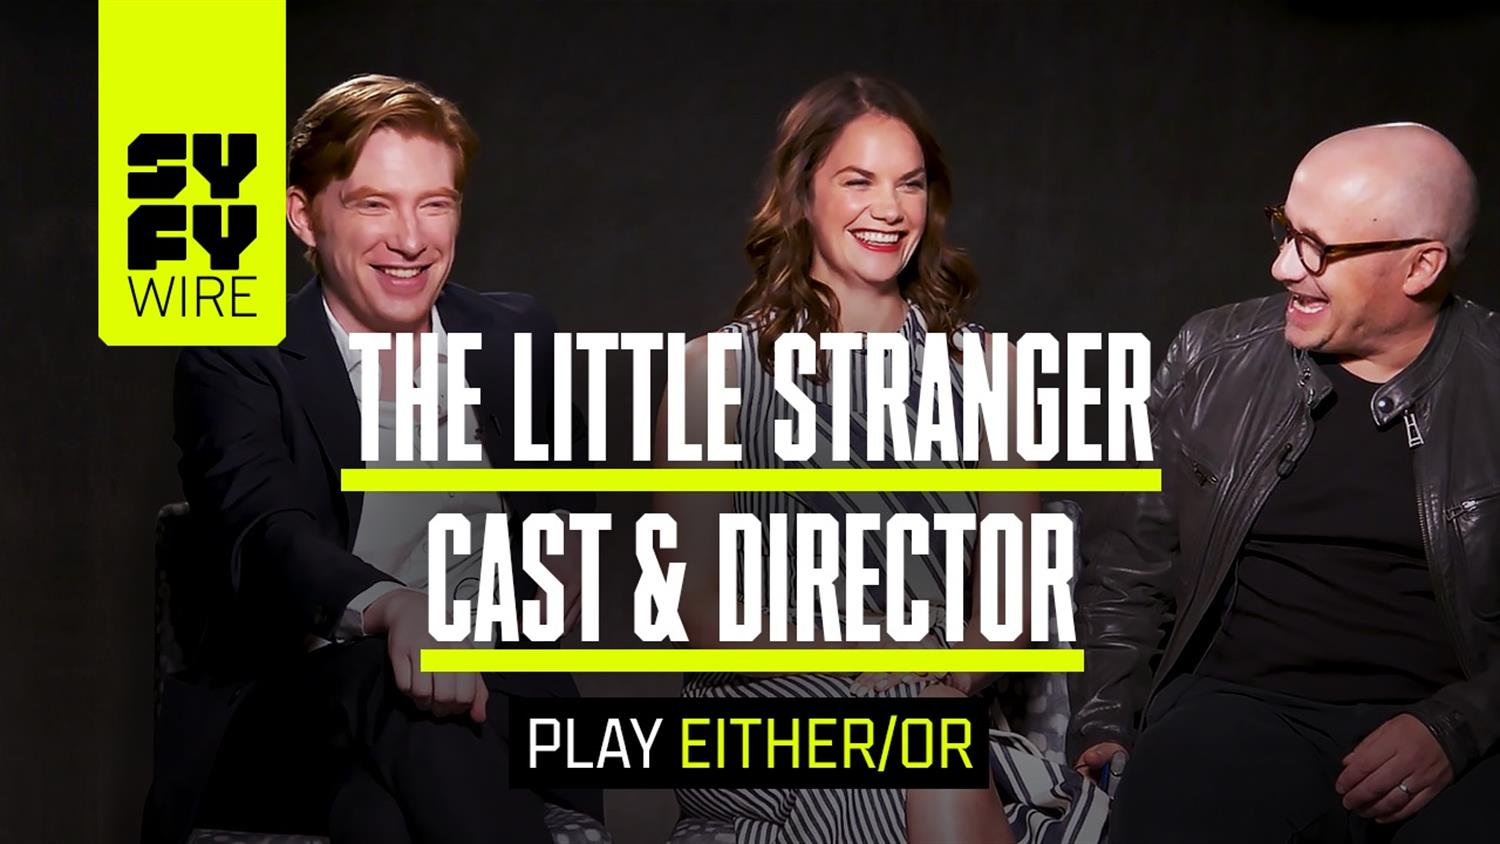 Ruth Wilson & The Little Stranger Gang Play Either/Or